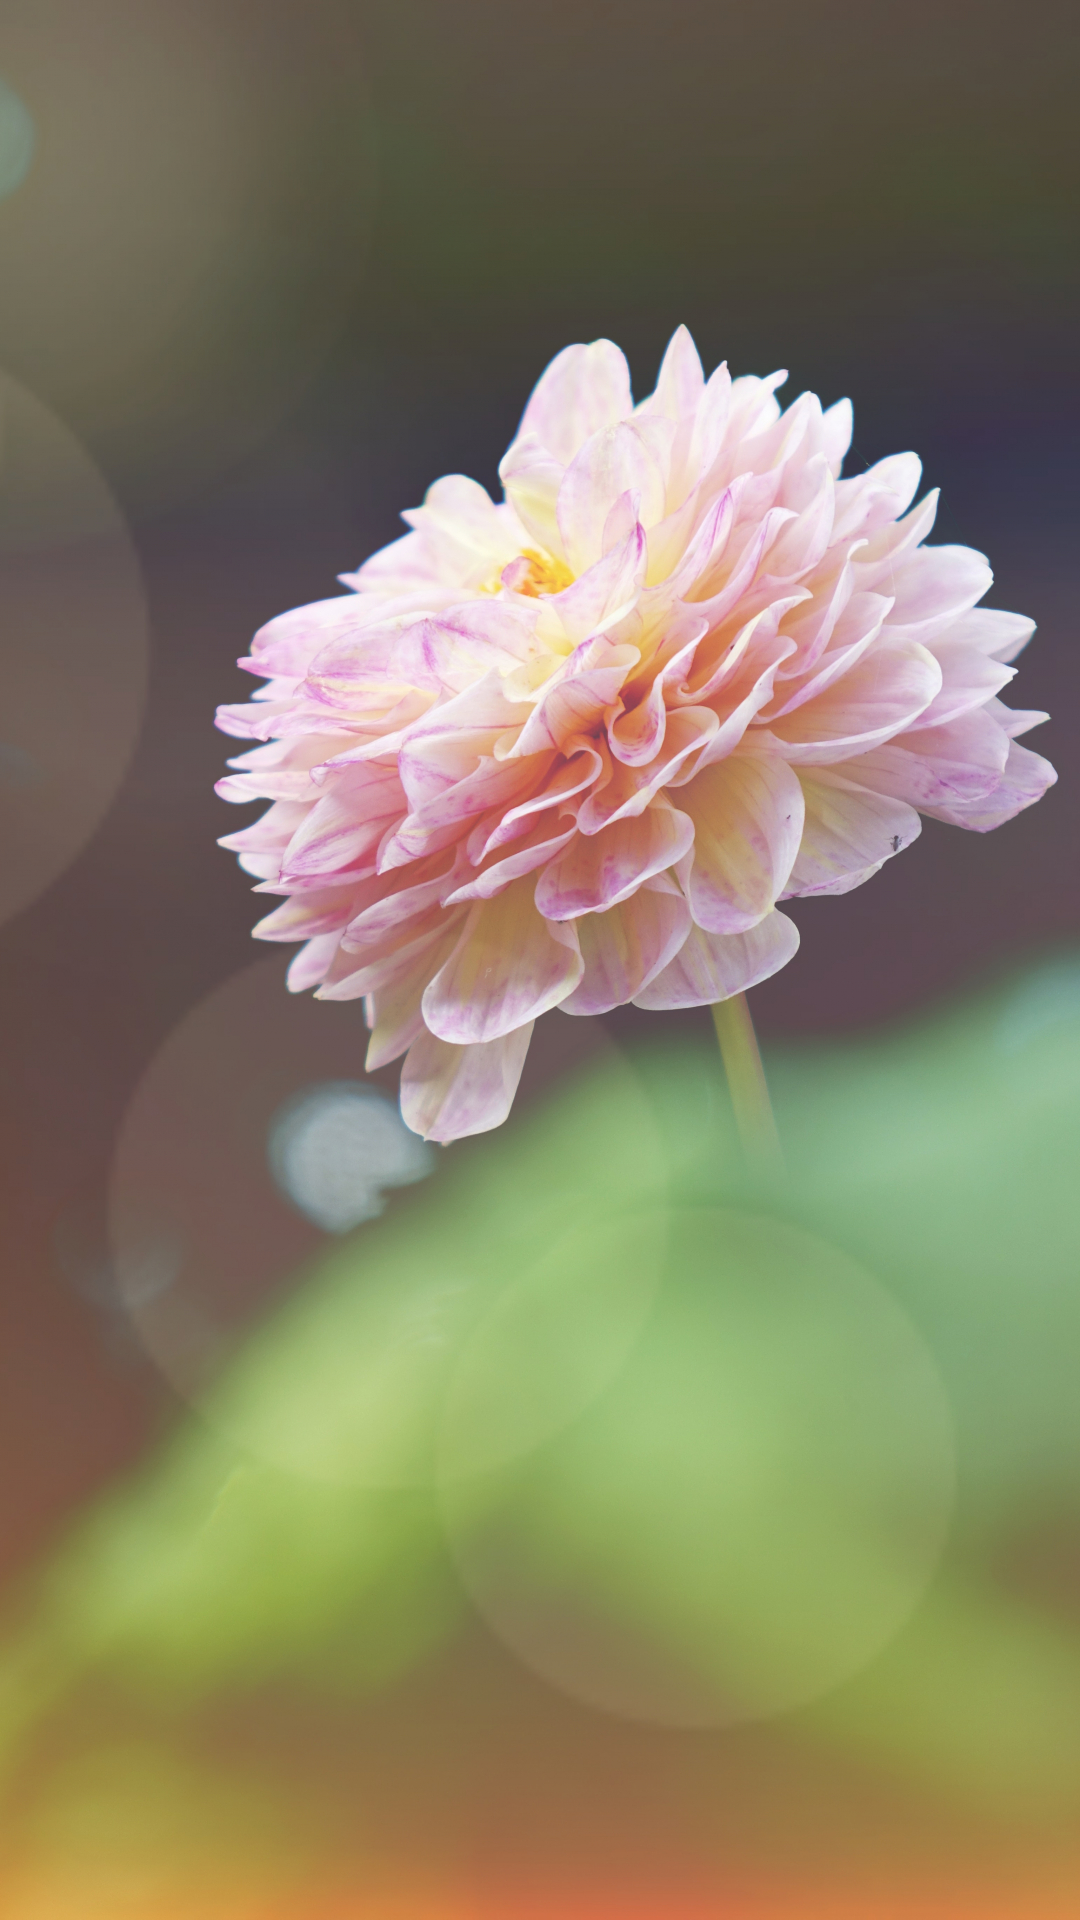 Sunlit Pink Flower iPhone Wallpaper